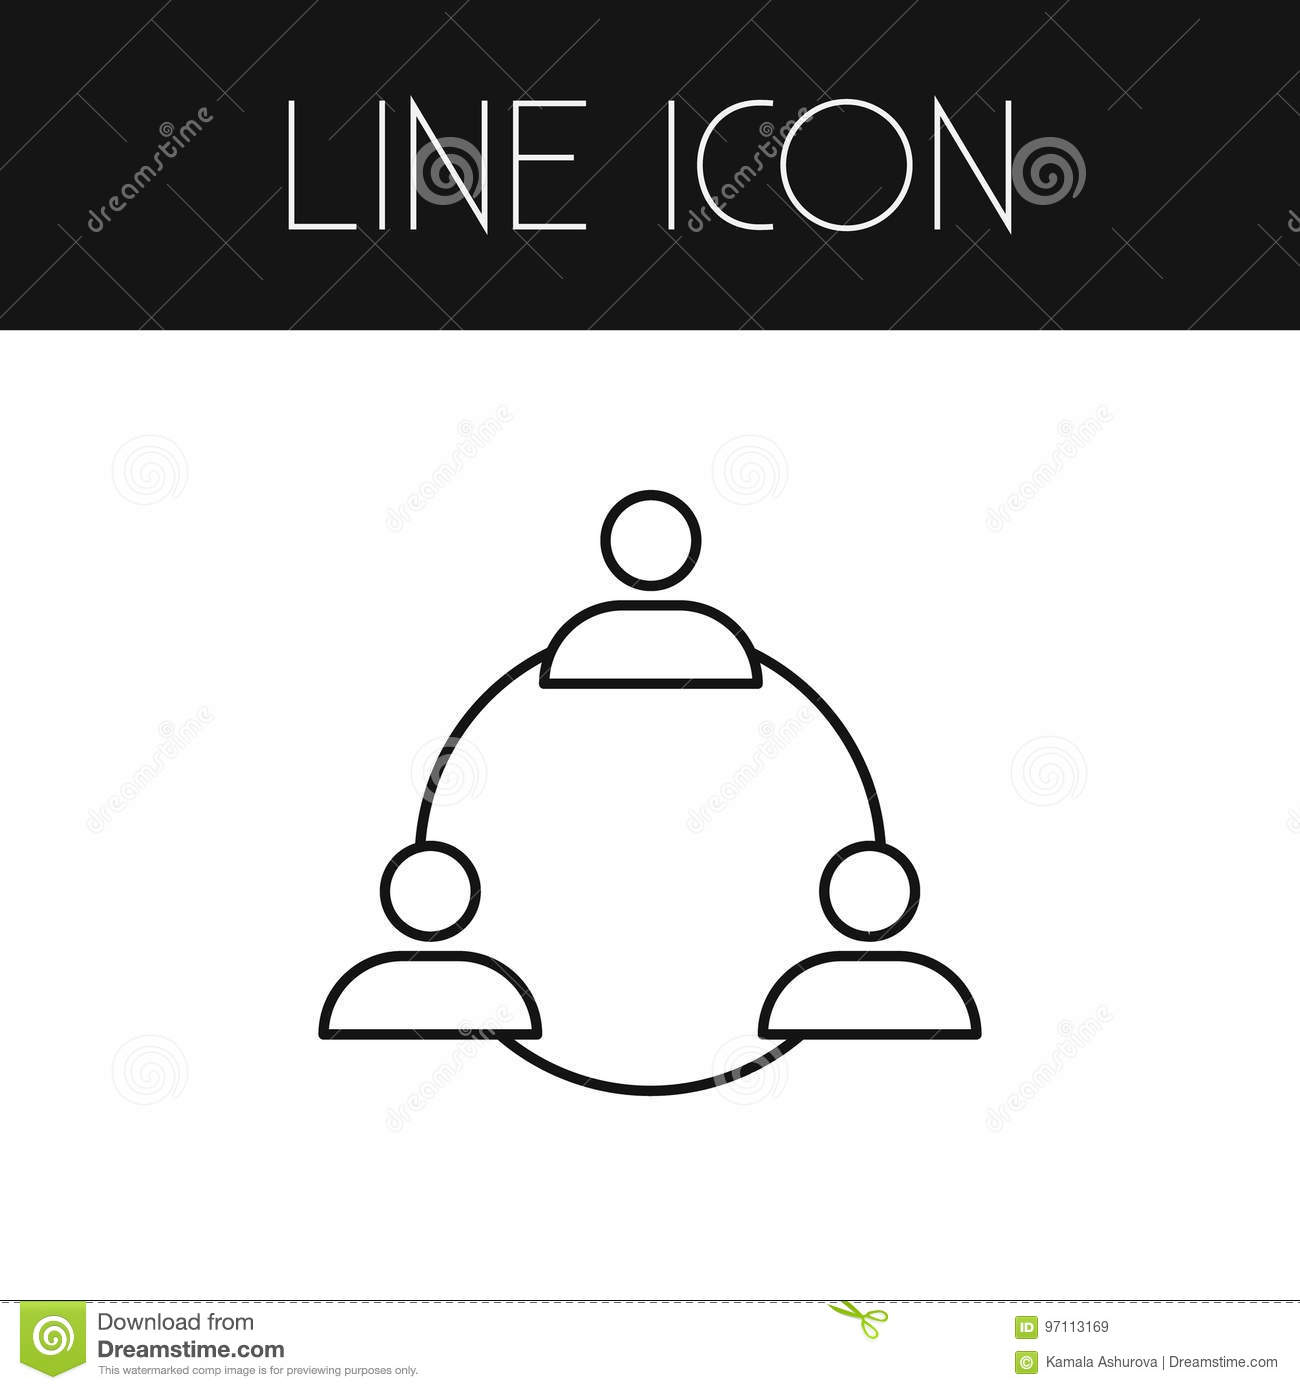 Staff Outline  Group Vector Element Stock Vector - Illustration of